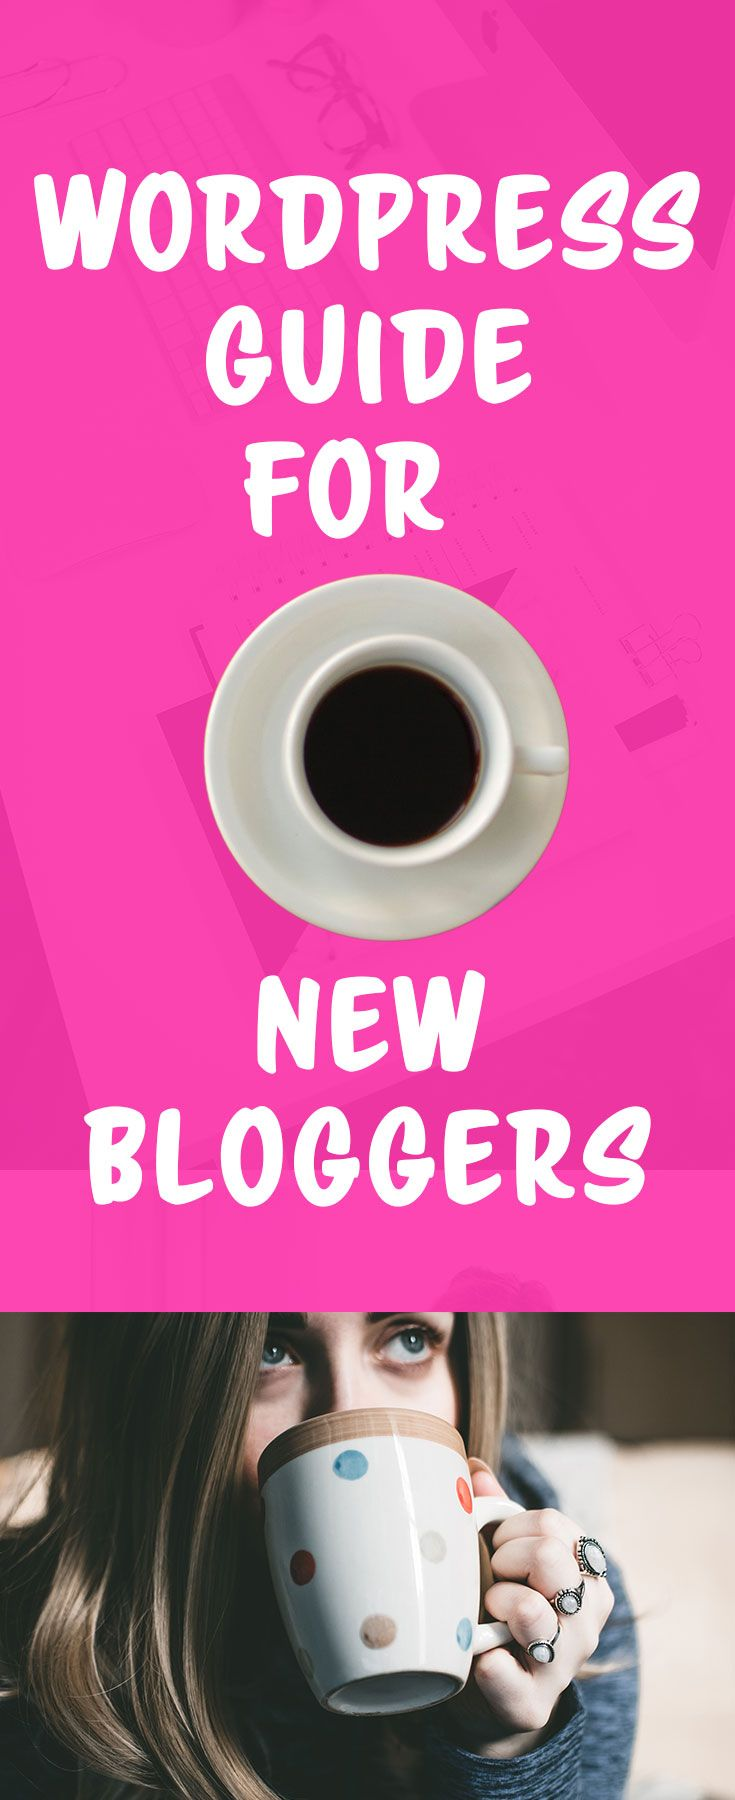 WordPress guide for new bloggers, You will learn how to install WordPress and how to start your blogging with WordPress